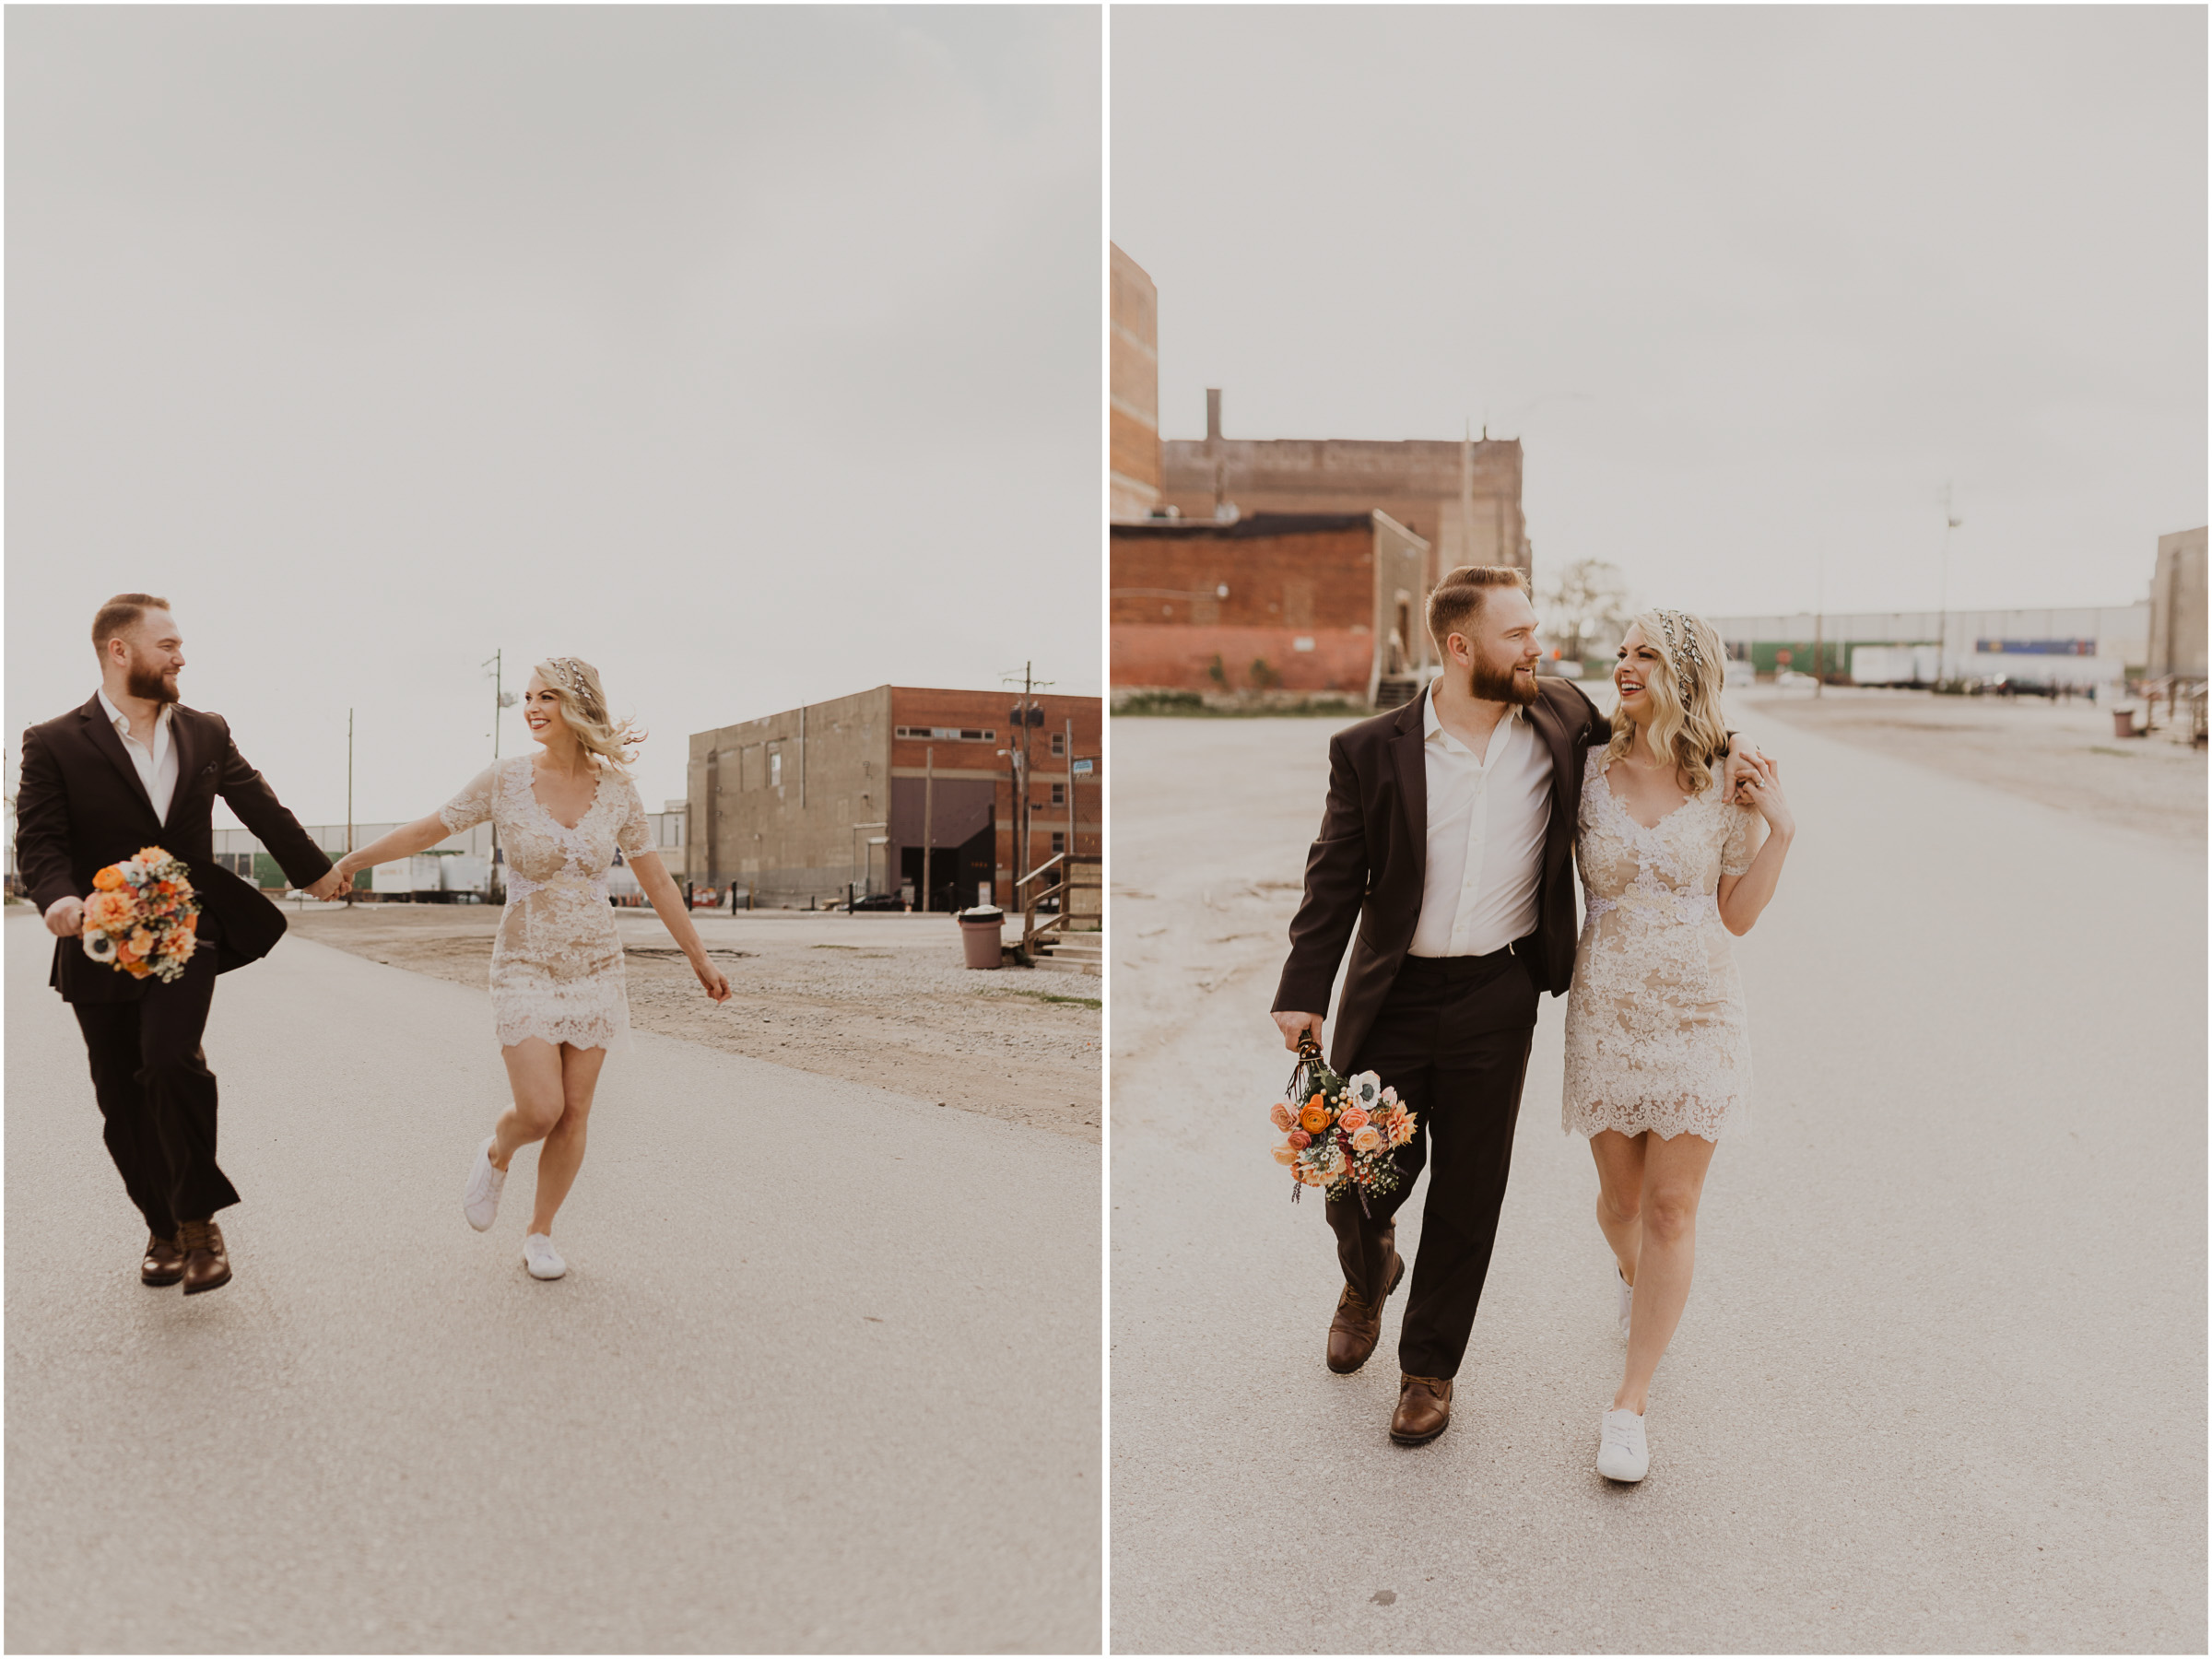 alyssa barletter photography styled shoot wedding inspiration kansas city west bottoms photographer motorcycle edgy intimate-38.jpg